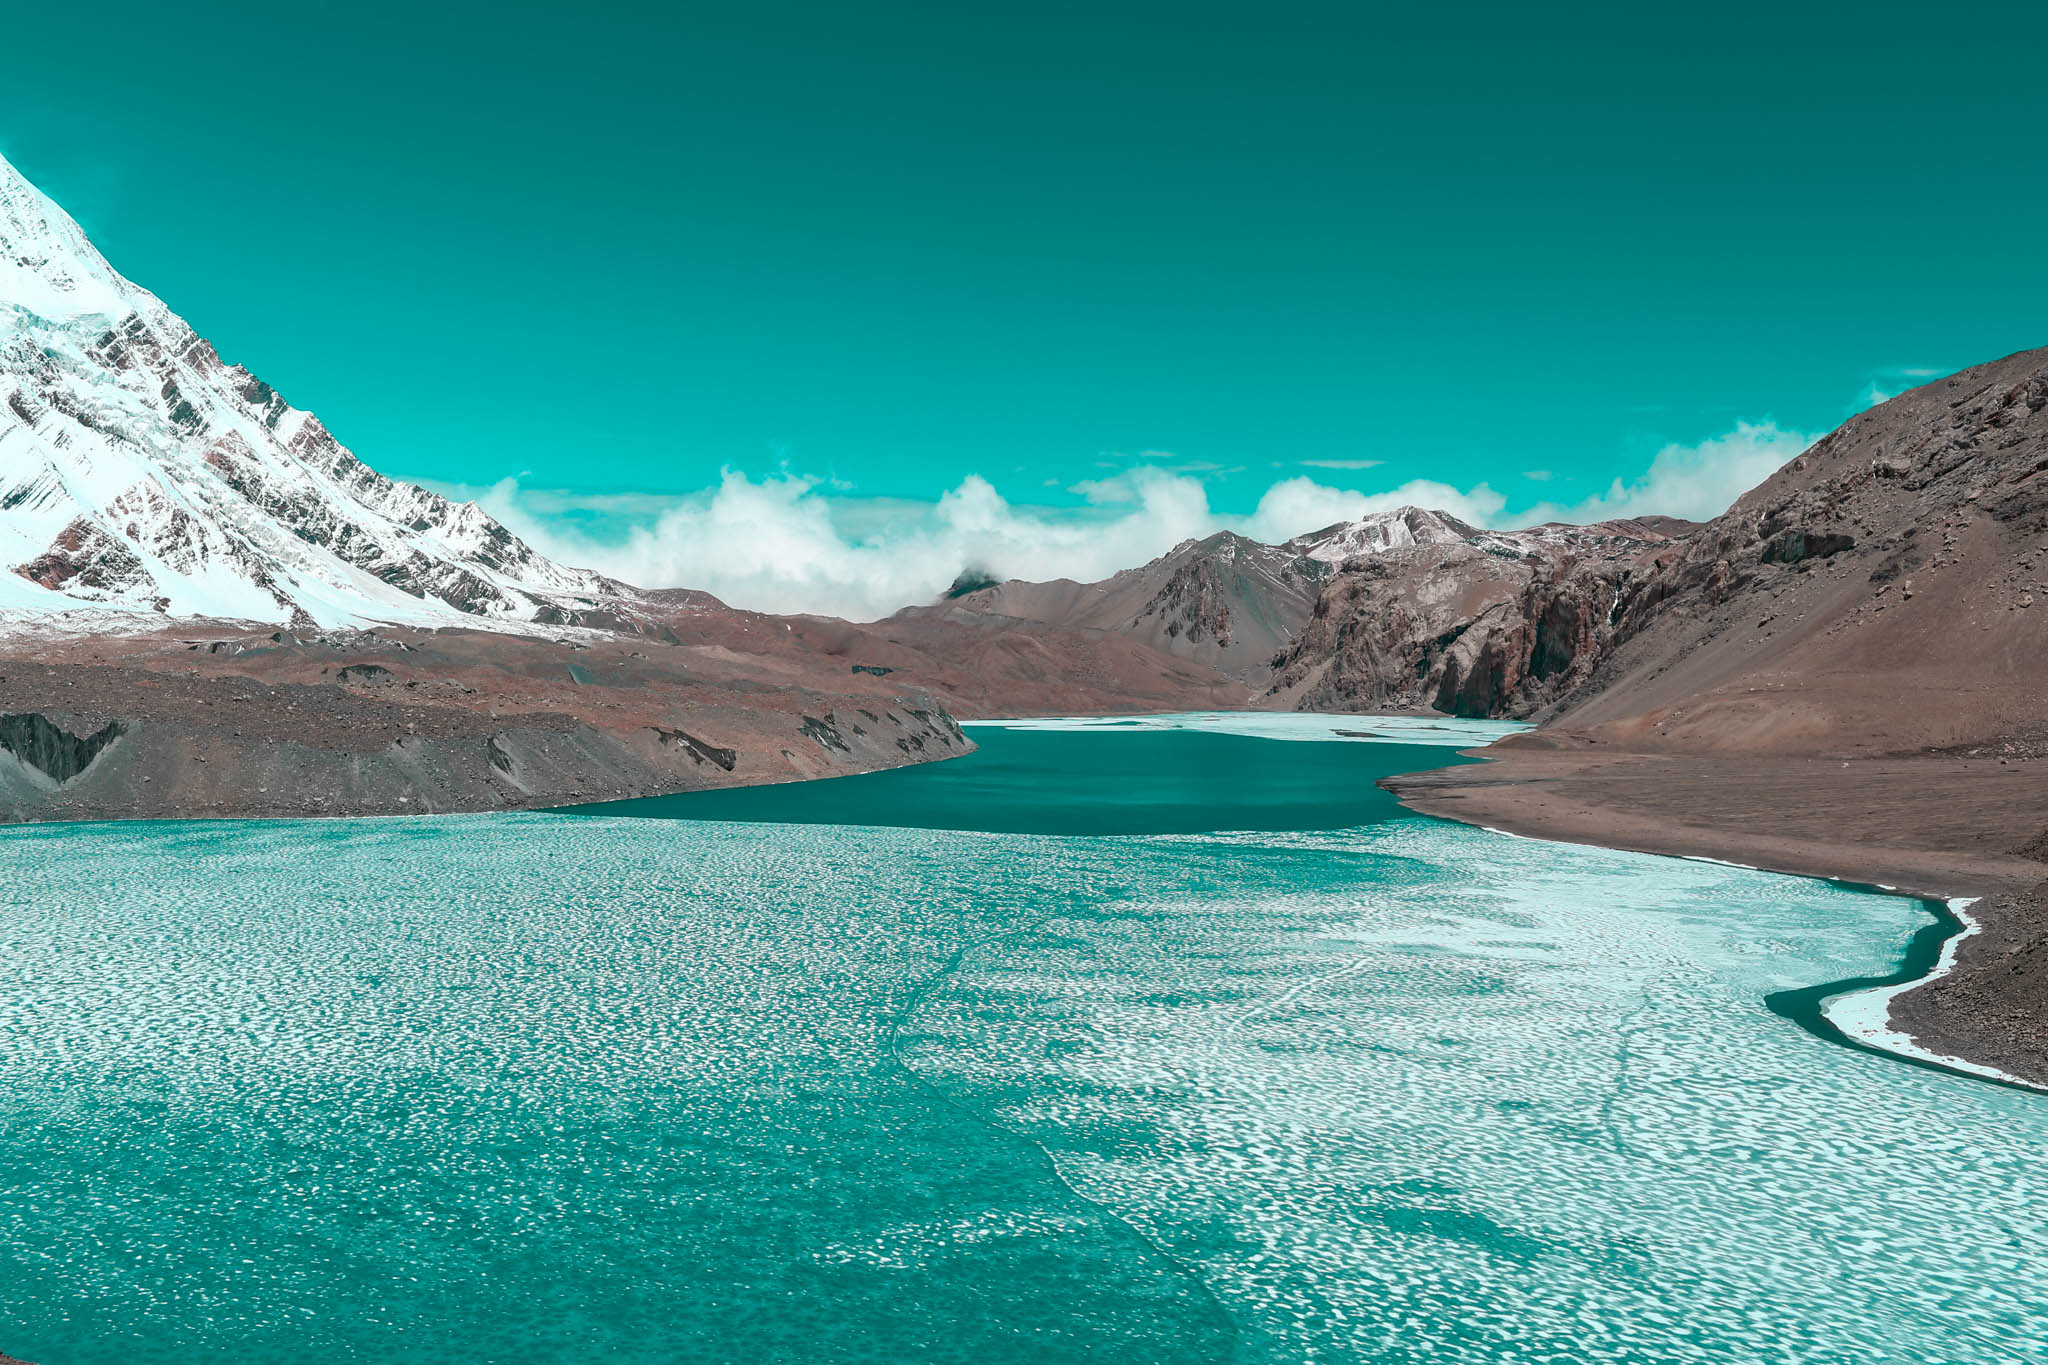 The largest and highest lake in the world, Lake Tilicho, Nepal.